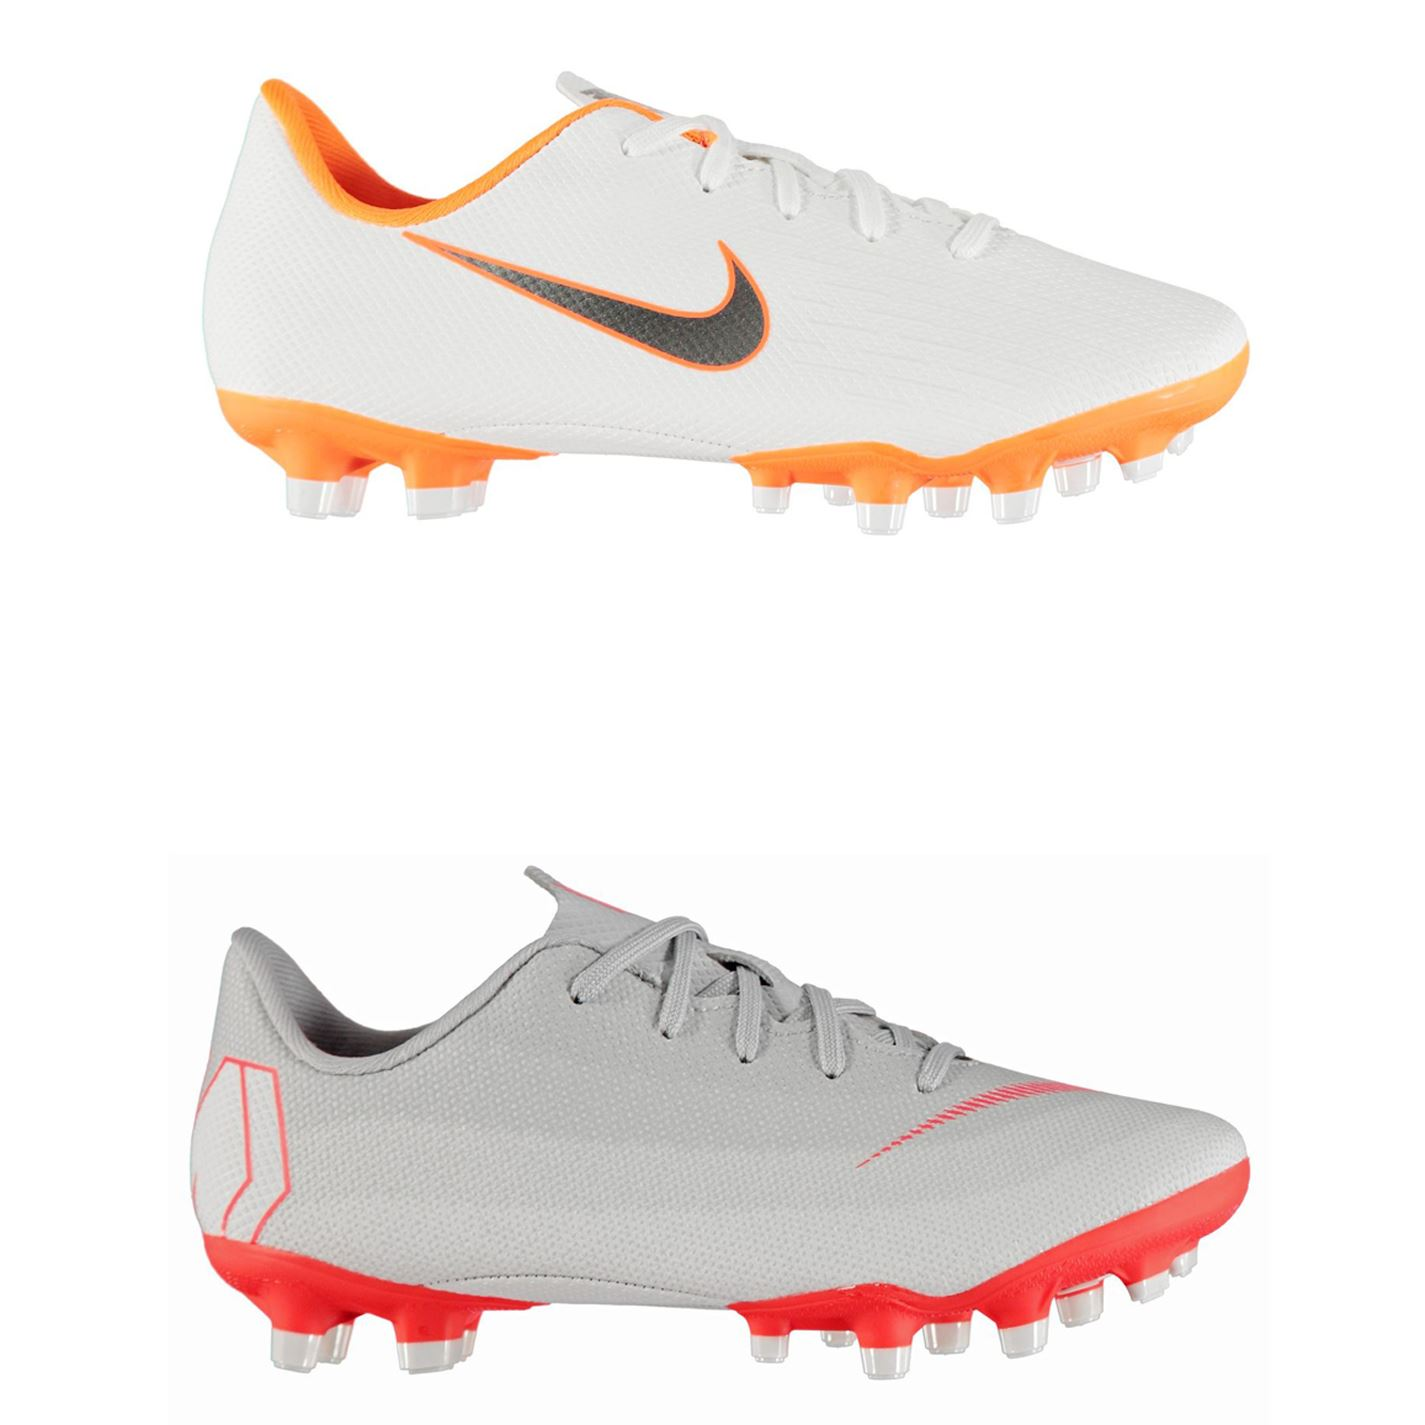 new concept 95354 5c5d7 ... Nike Mercurial Vapor Academy Football Boots Firm Ground Childs Soccer  Cleats ...